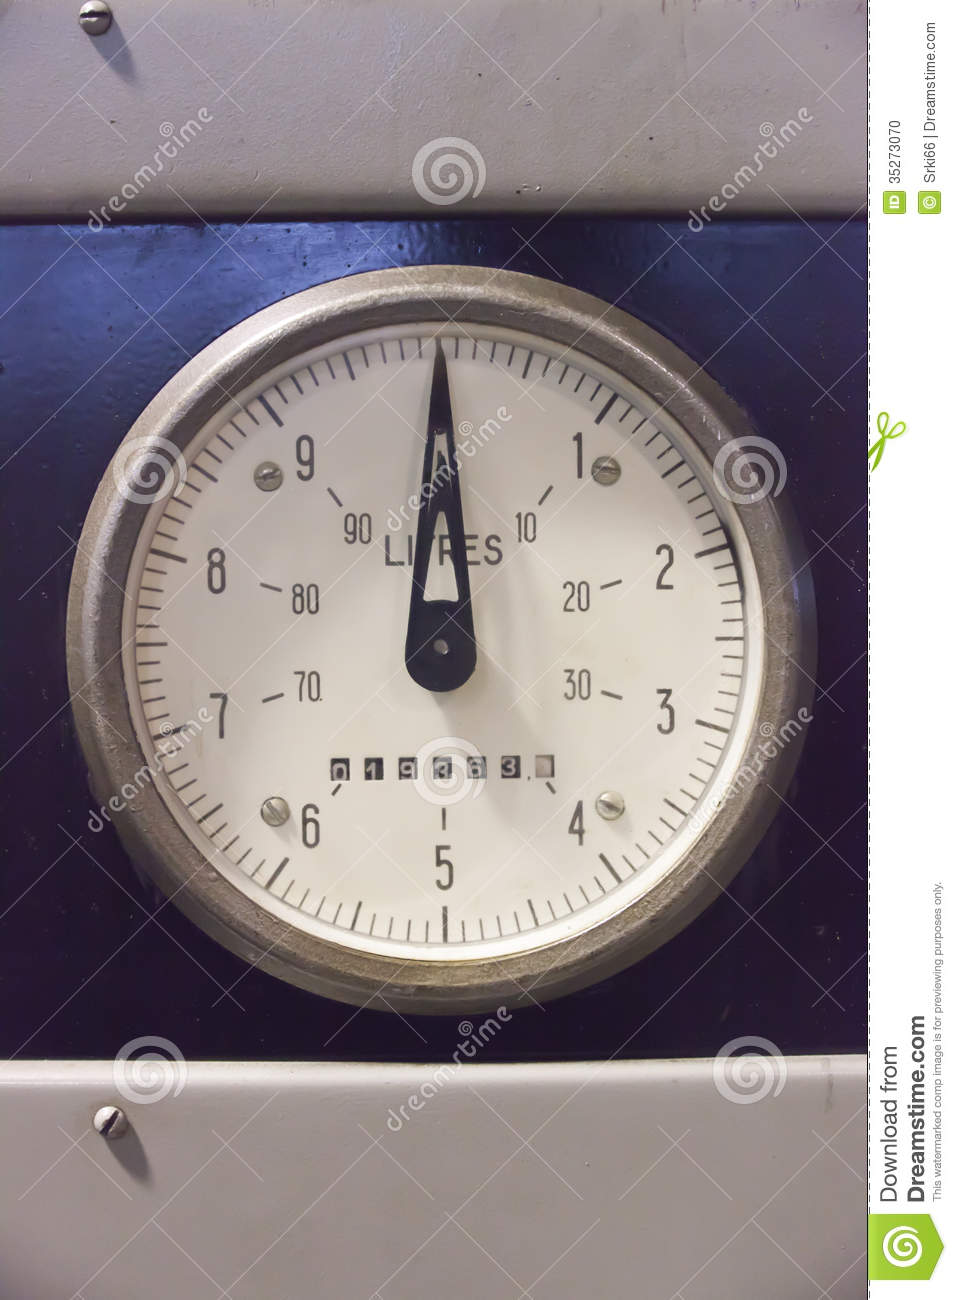 Time Measuring Instruments : Measuring instrument stock photo image